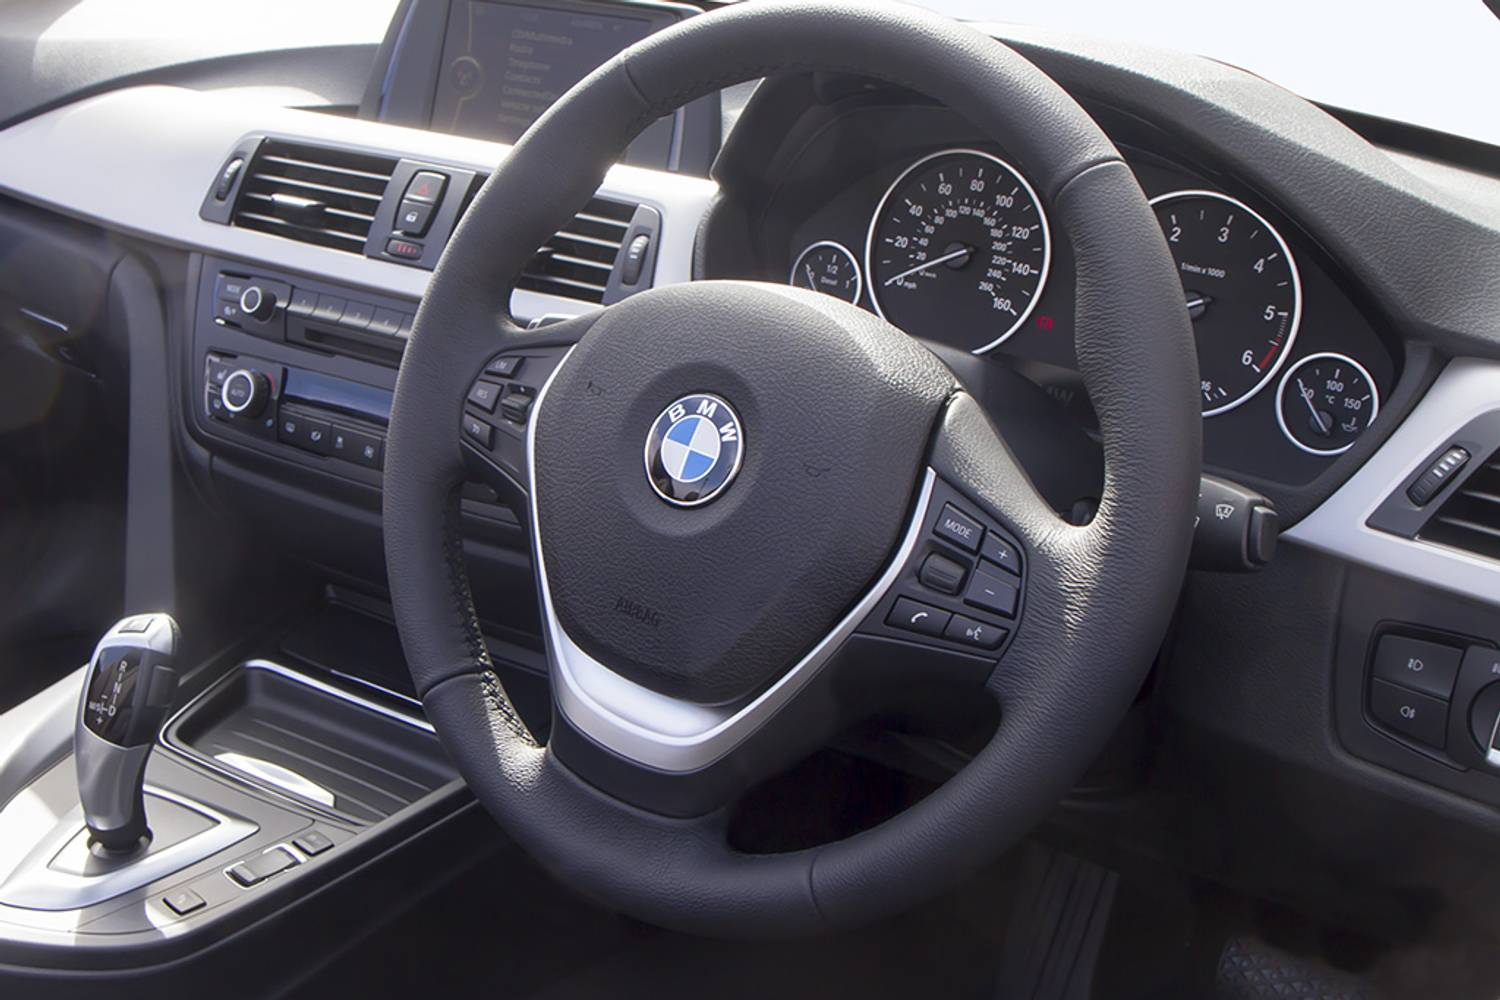 BMW 4 Series Convertible 2dr interior